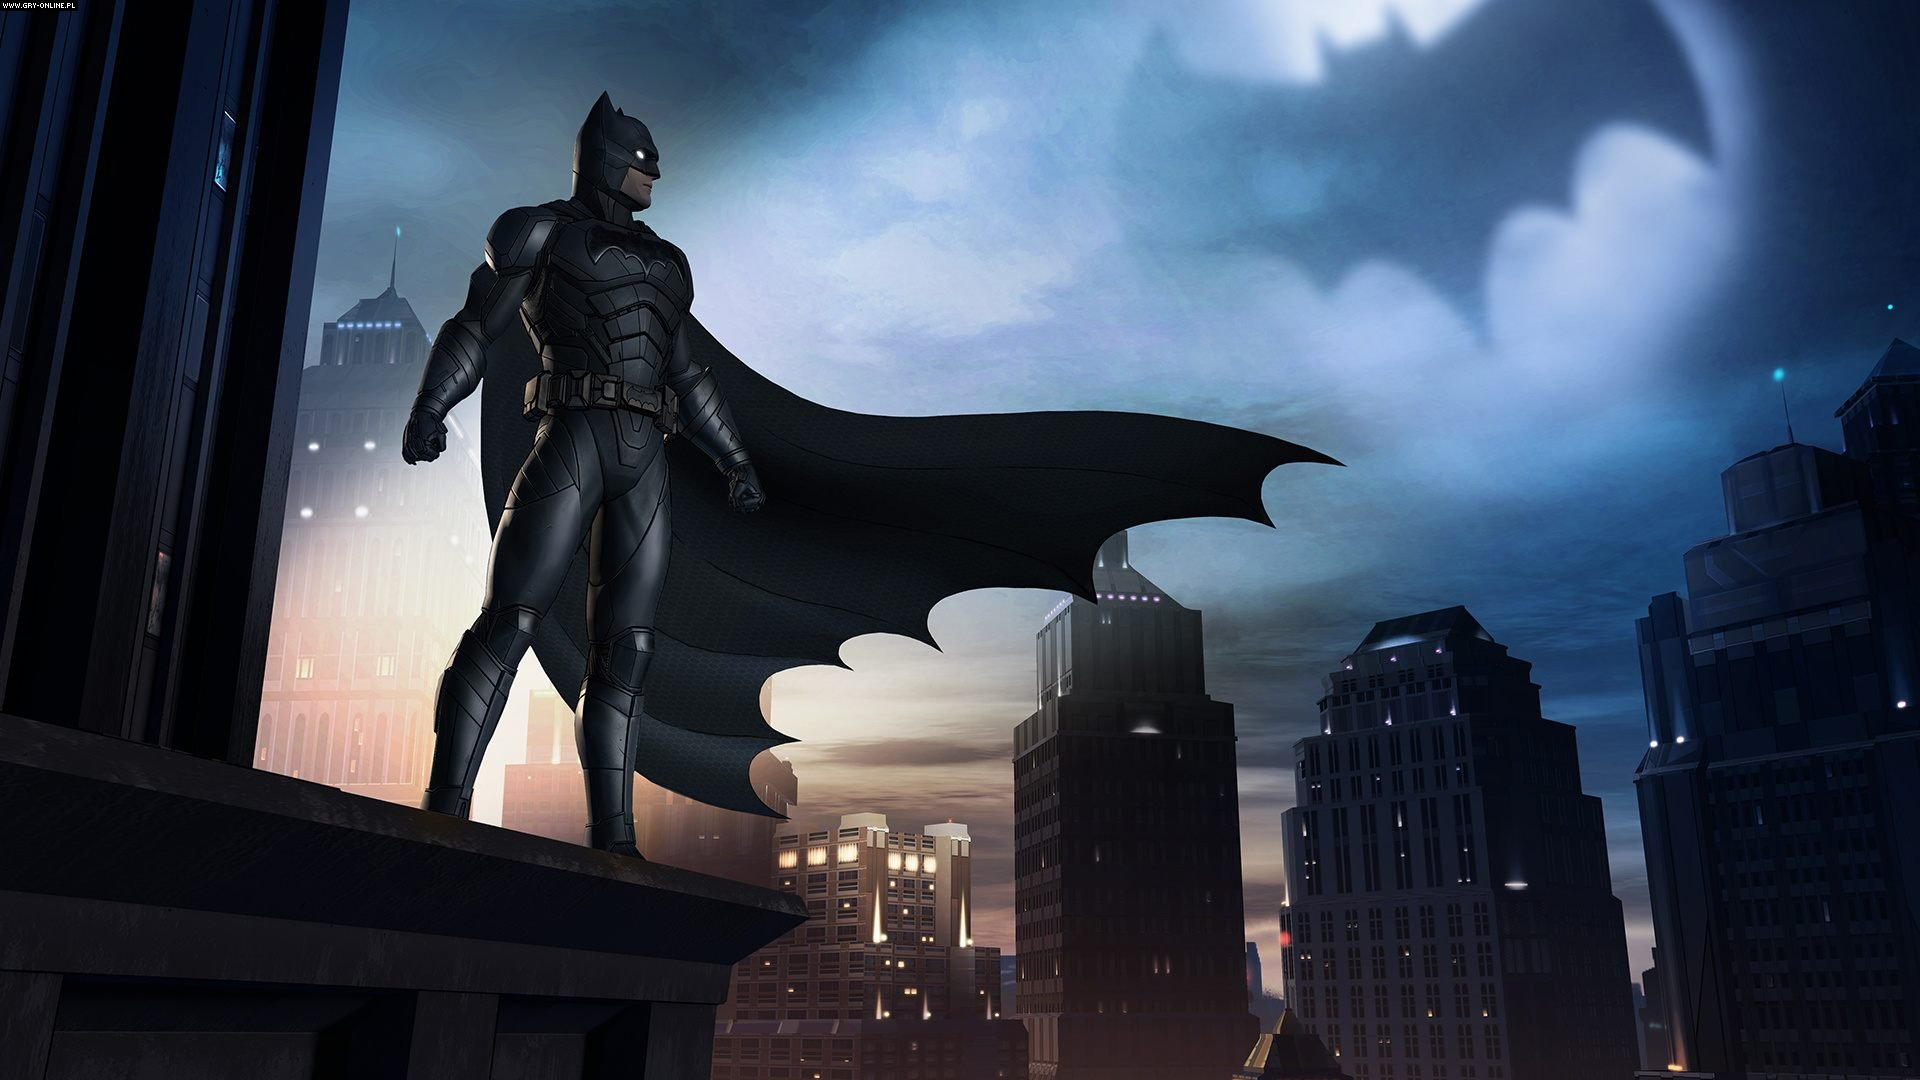 Batman: The Telltale Series - The Enemy Within PC, PS4, XONE, AND, iOS Games Image 6/14, Telltale Games